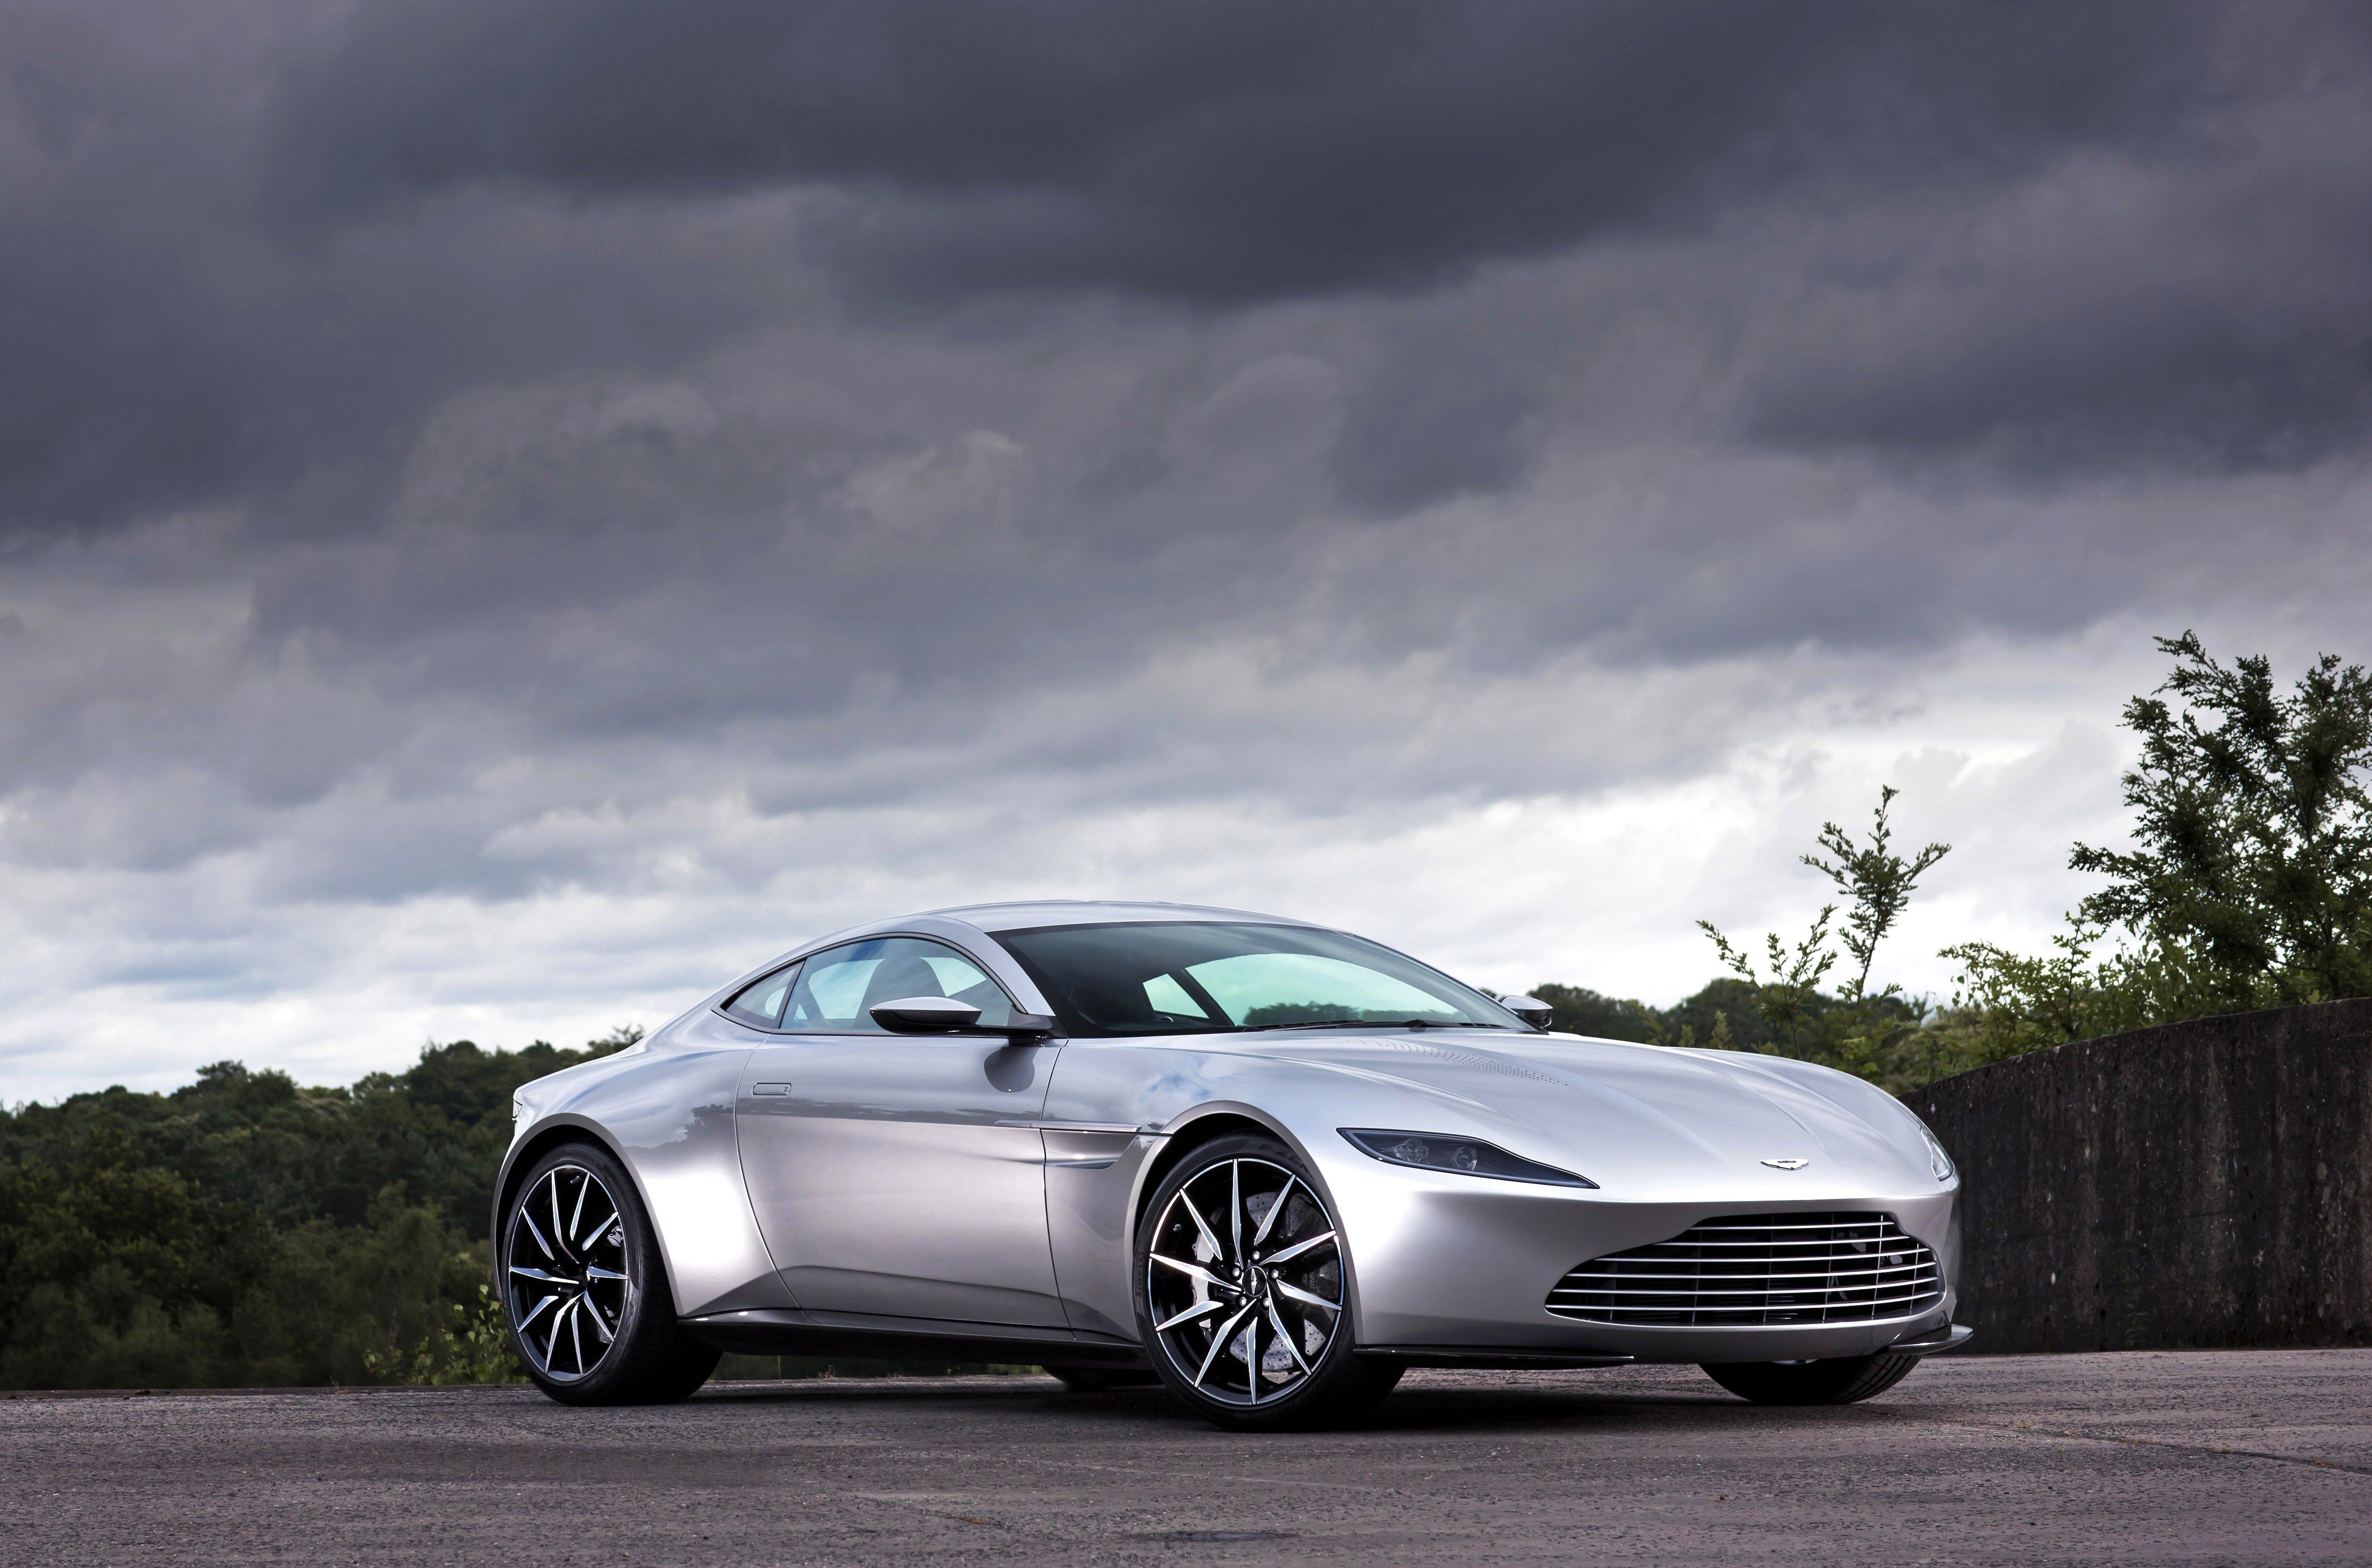 Aston Martin Db10 The Most Wanted Car In The World Aston Martin Db10 New Aston Martin Aston Martin